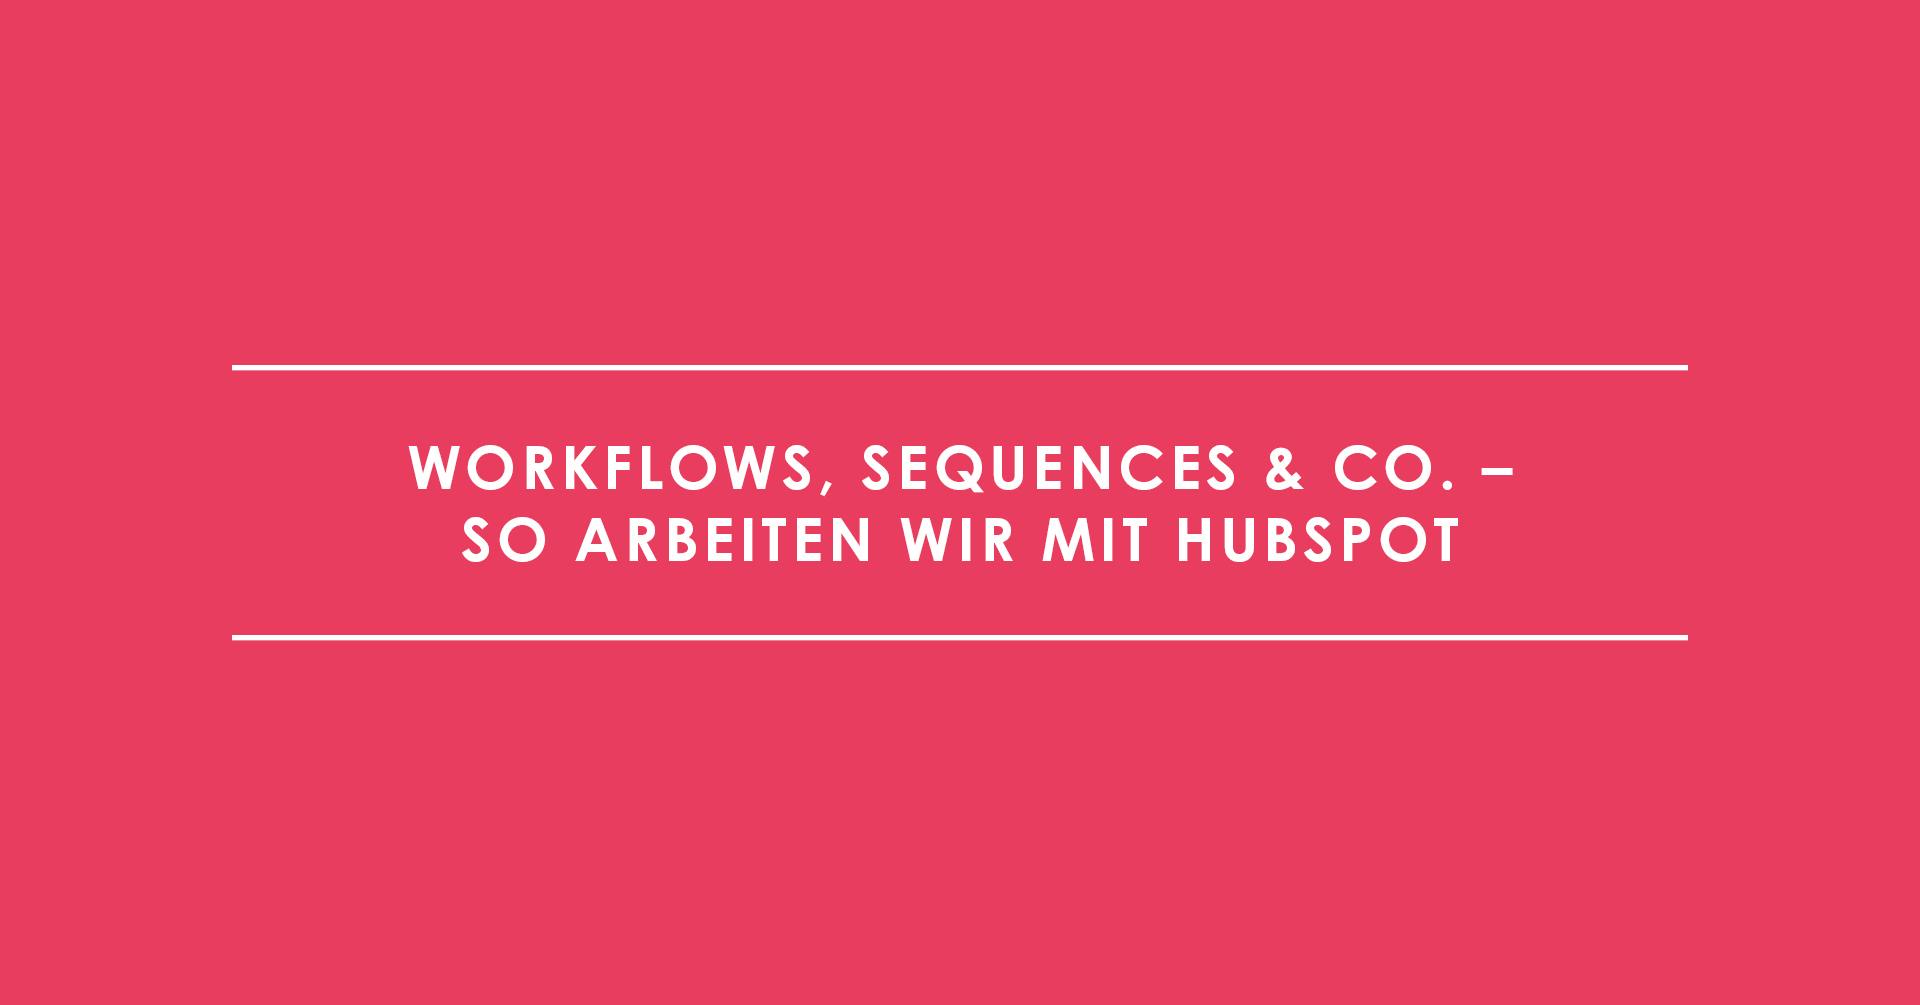 Workflows, Sequences & Co. – so arbeiten wir mit HubSpot